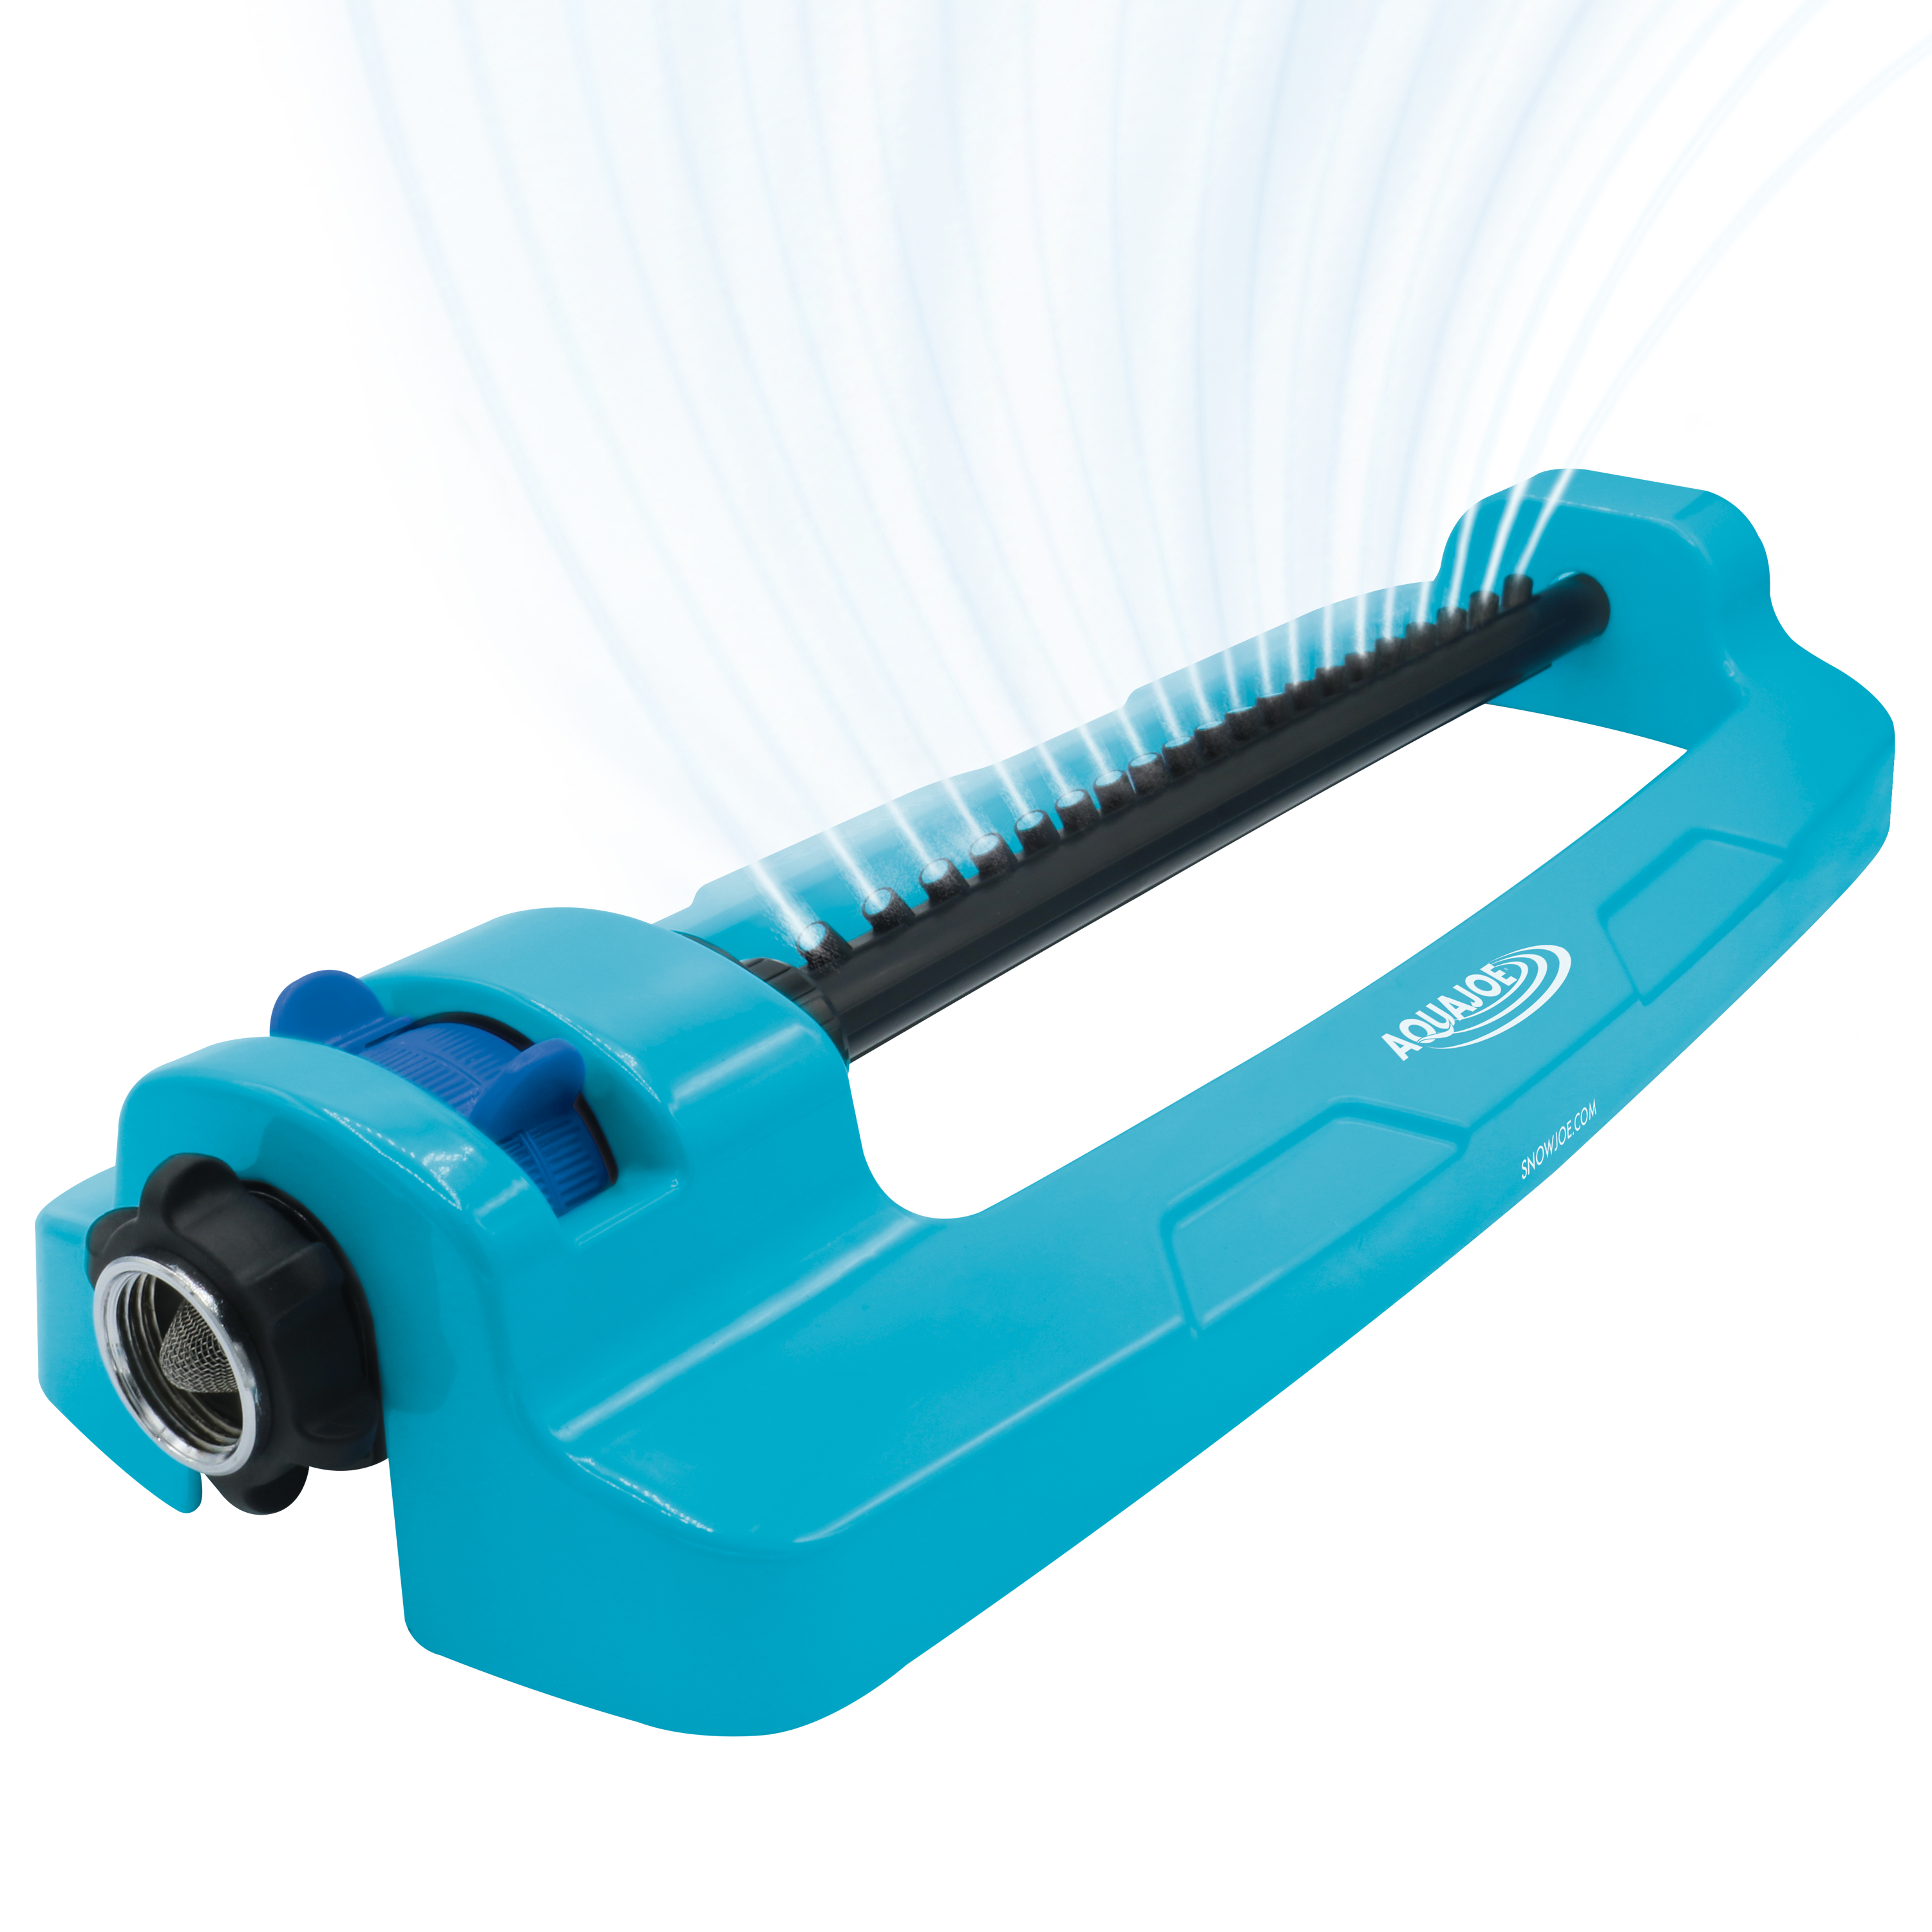 Image of Aqua Joe SJI-OMS20 Indestructible Jumbo Metal Base Oscillating Sprinkler | 4,400 Sq Ft Coverage